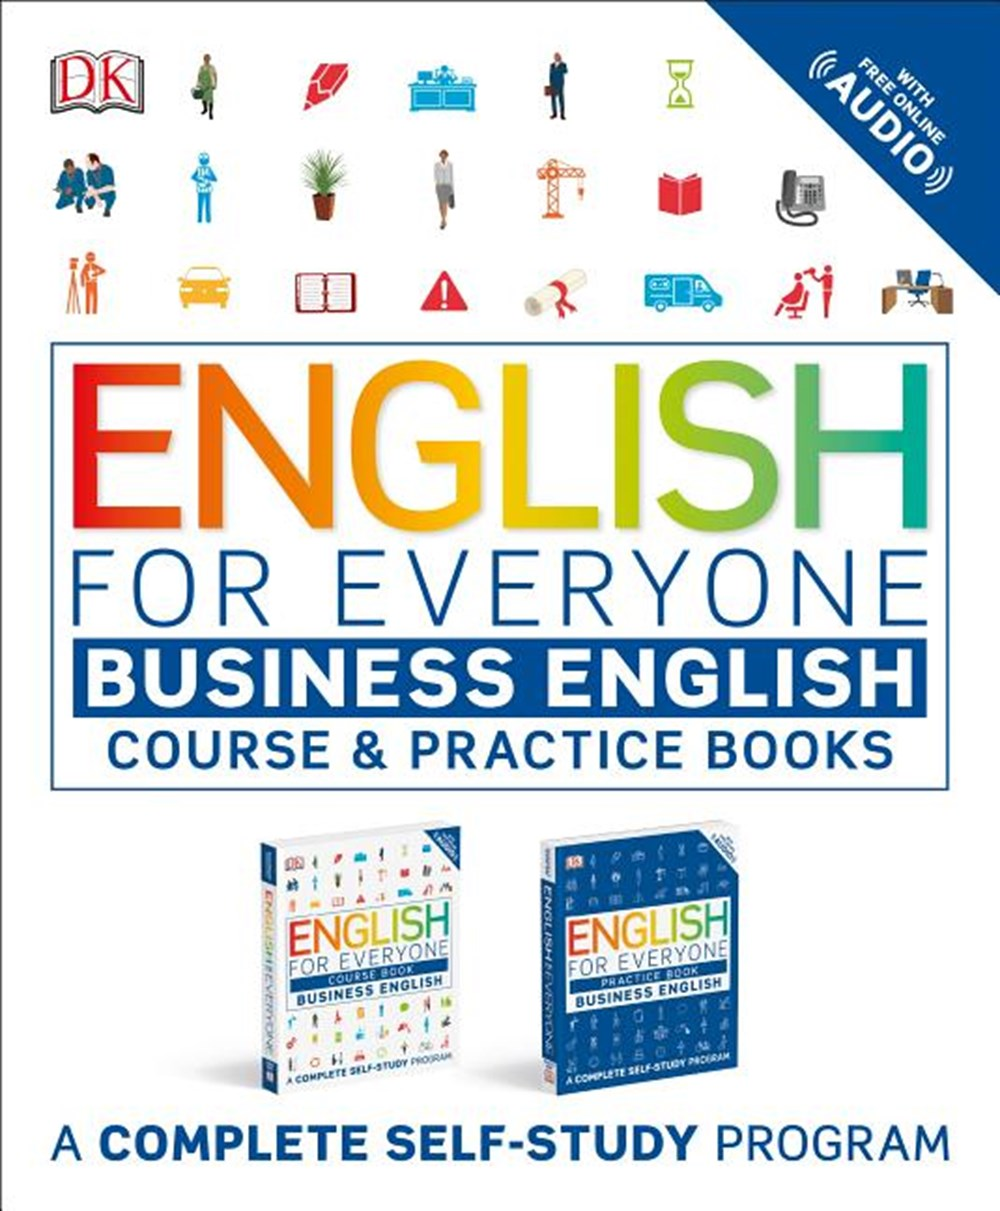 English for Everyone Slipcase Business English Box Set: Course and Practice Books a Complete Self-St